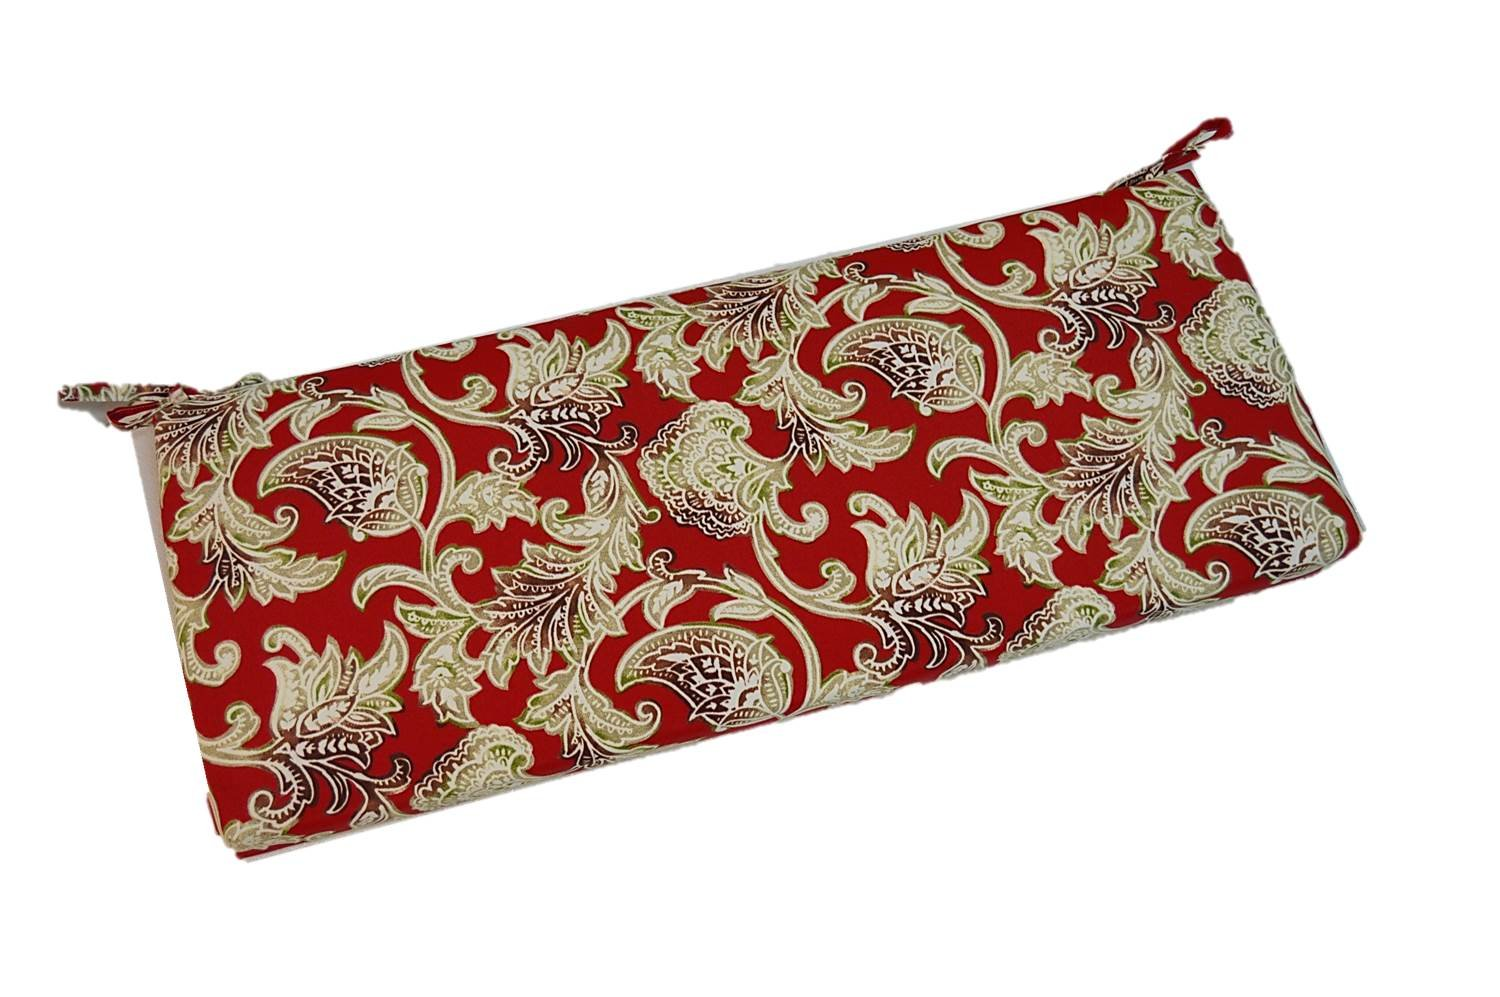 Red, Brown, Tan, Green Shabby Chic Vintage Paisley 2'' Thick Foam Swing / Bench / Glider Cushion with Ties and Zipper - Choose Size (38''w x 18''d)